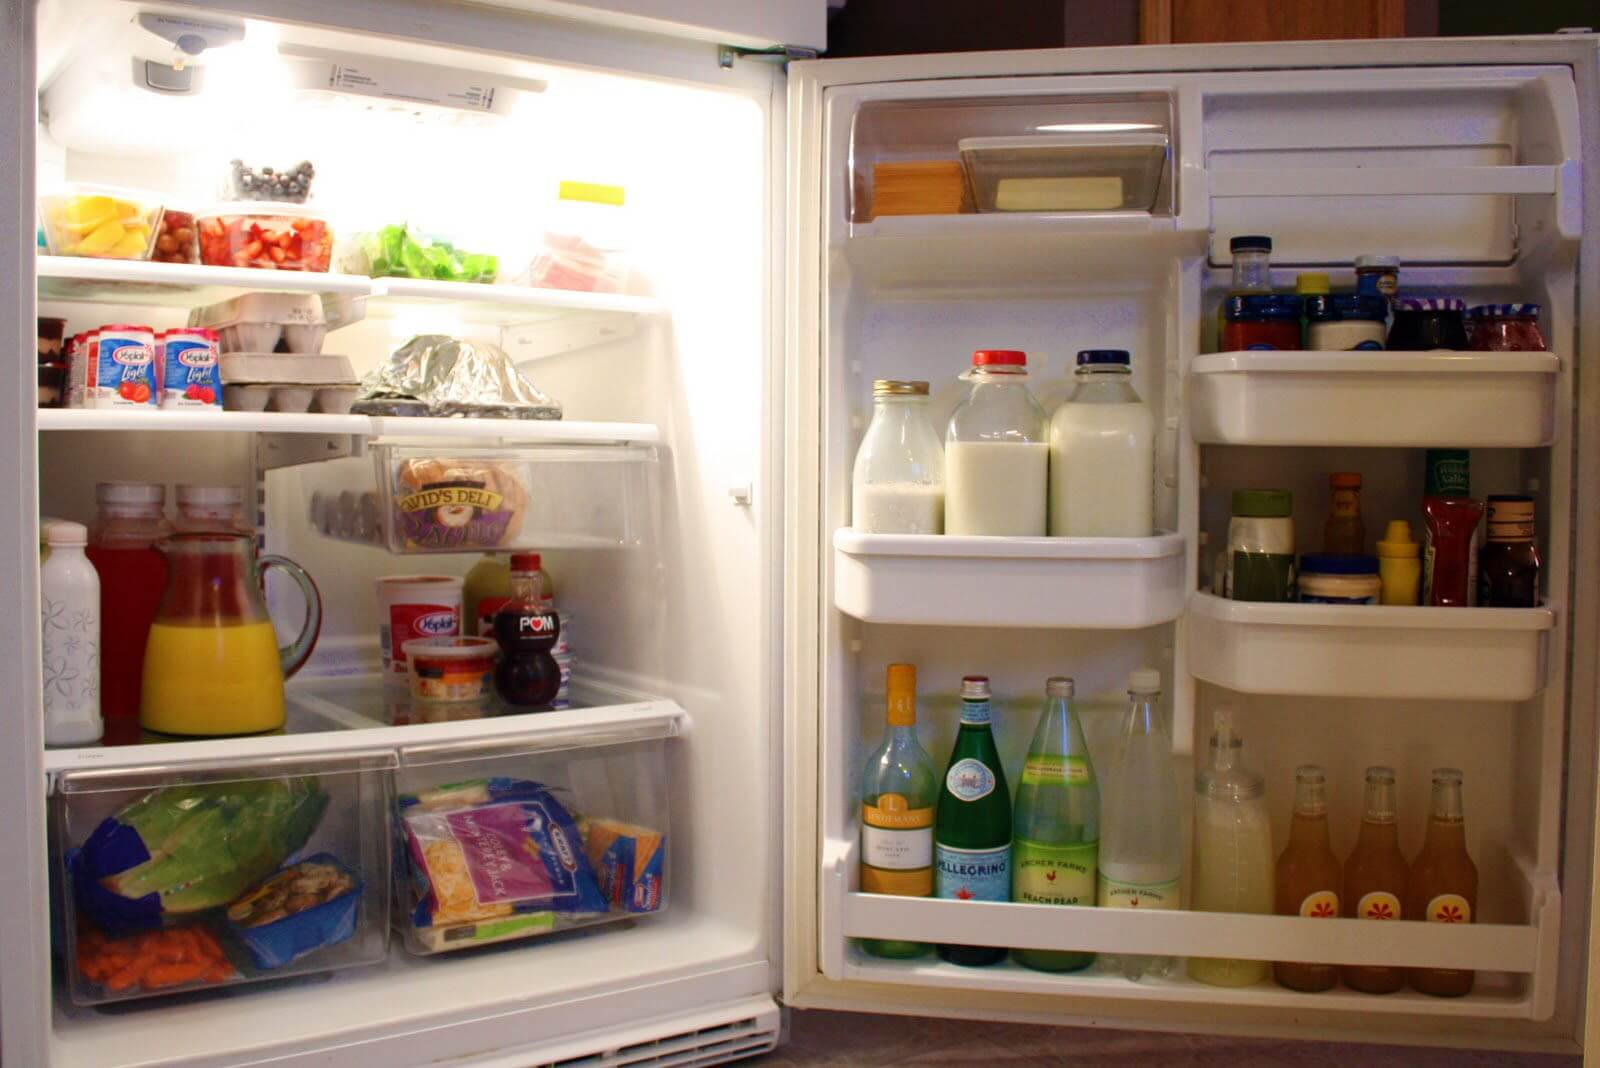 Tips To Keep Your Fridge Fresh Clean And Organized